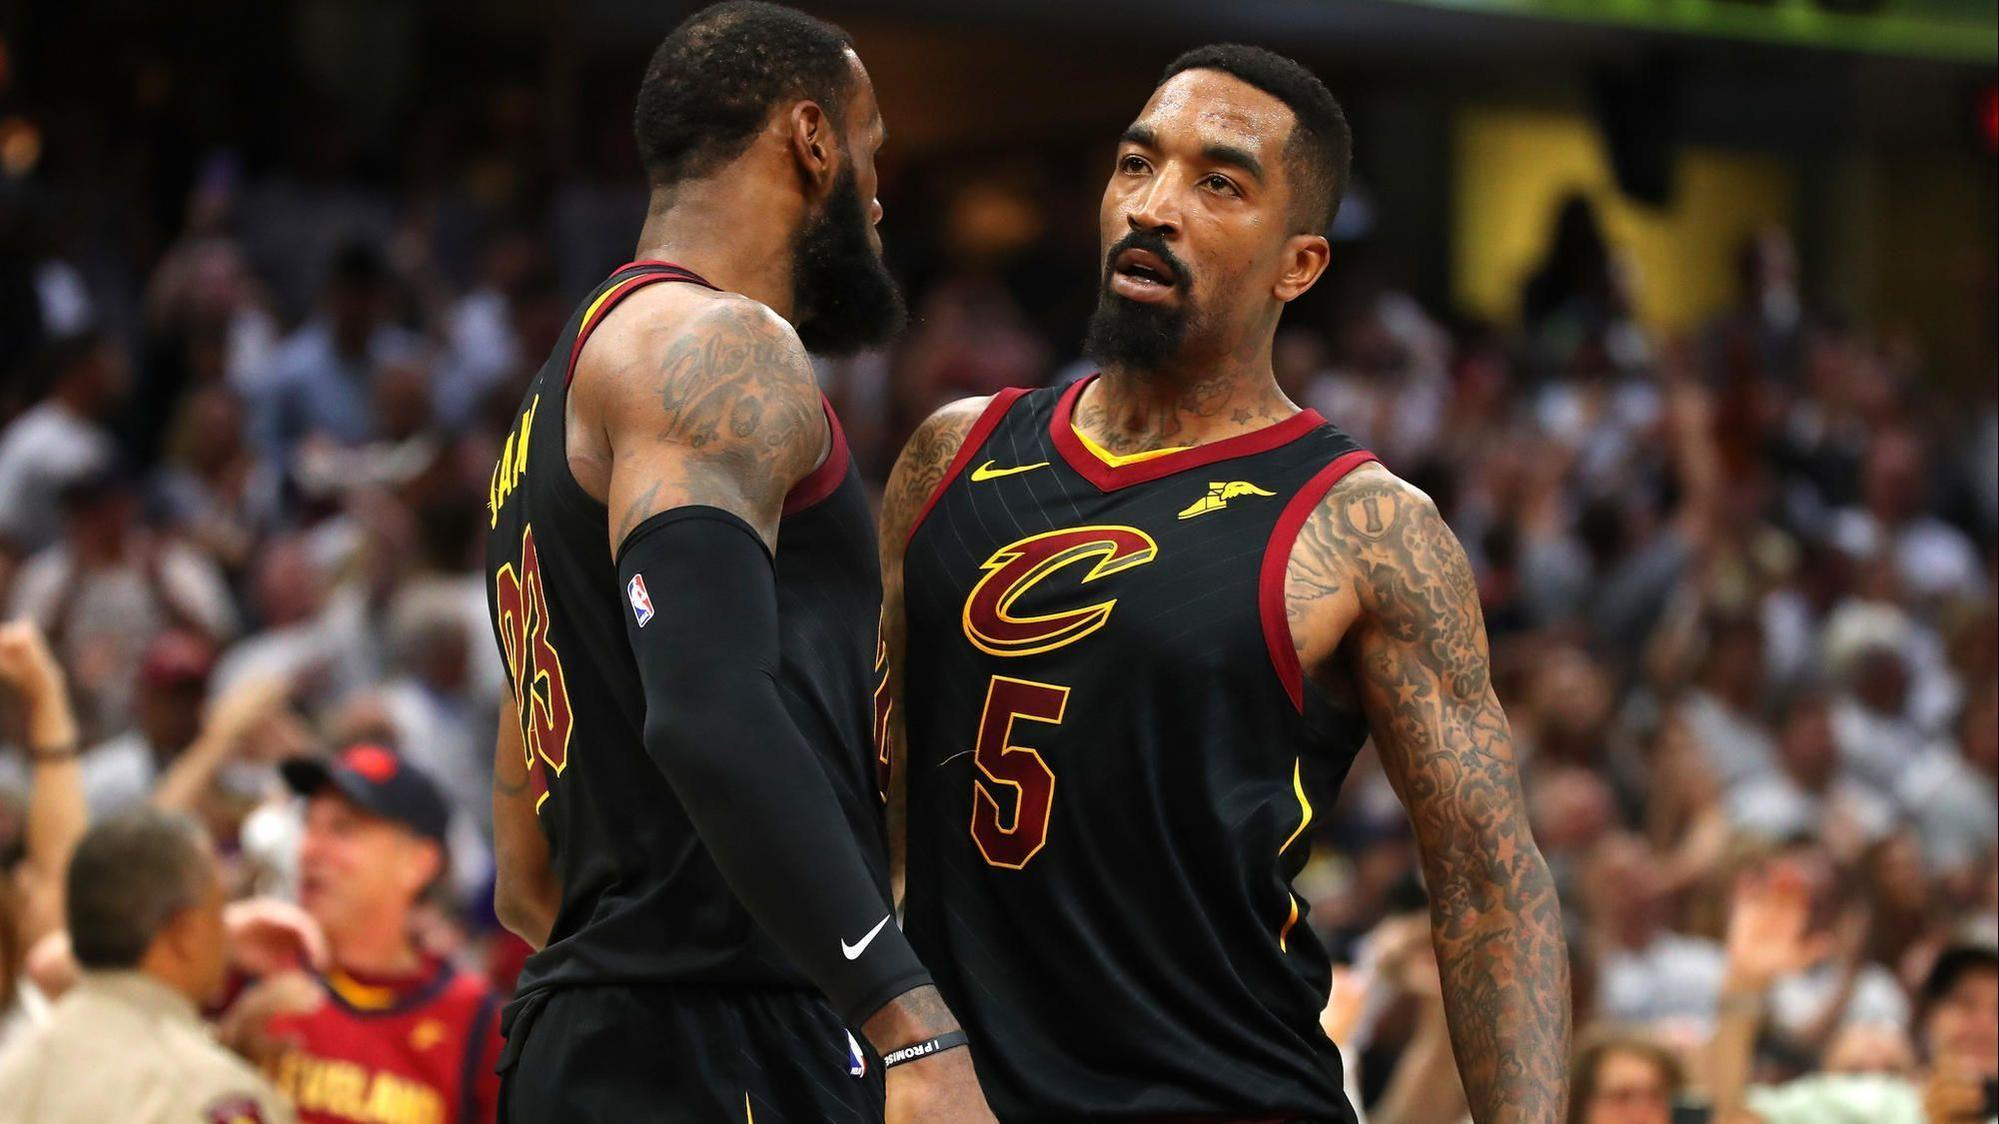 Cavaliers' J.R. Smith on playing with LeBron James: 'It's a gift and a curse' - Baltimore Sun